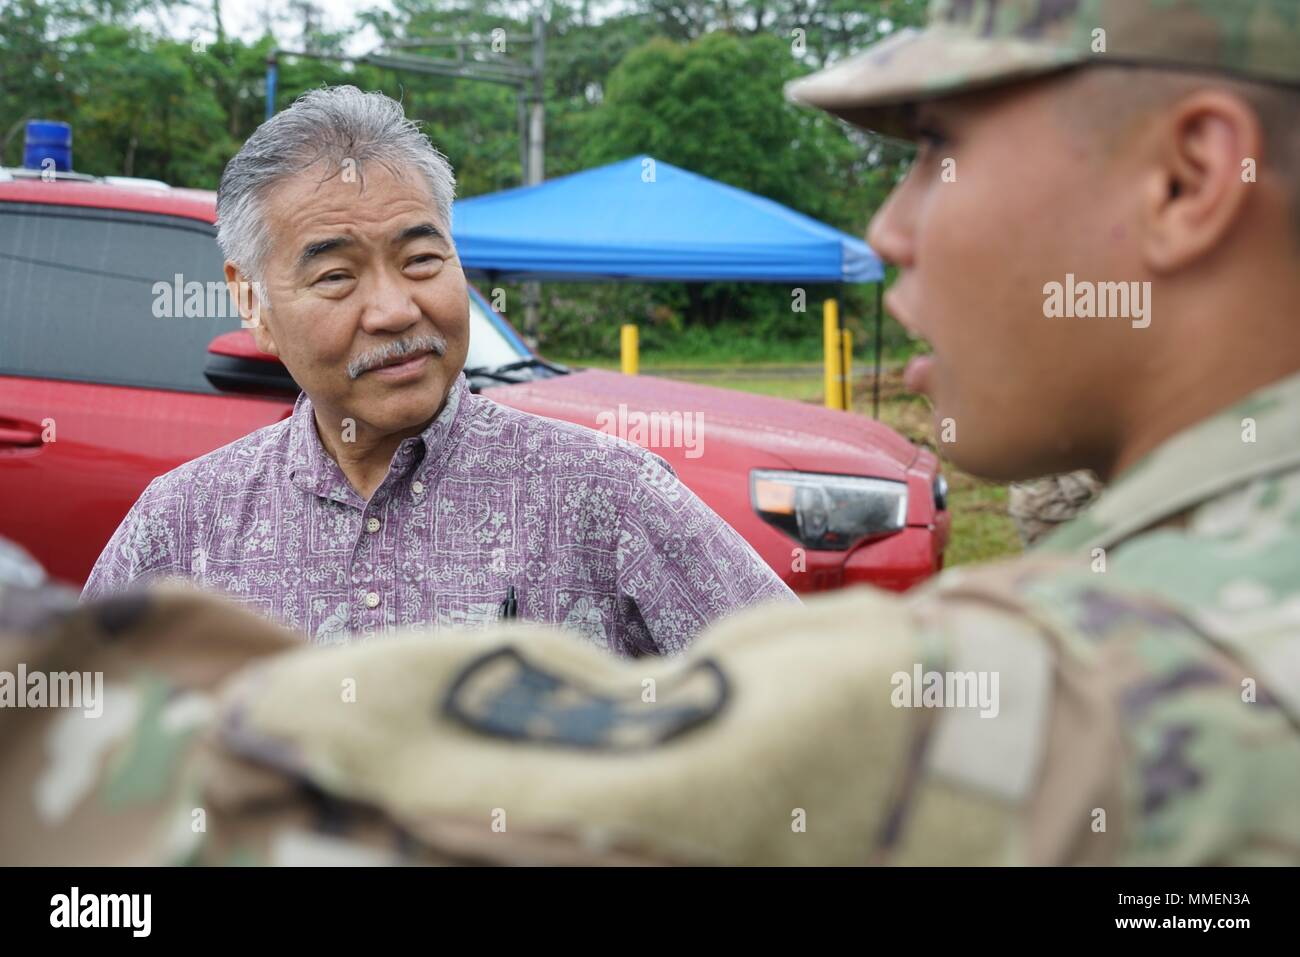 Hawaii Governor David Ige is briefed by National Guardsmen PFC Hoaka Corteskanaina, right, during a visit to the area affected by the Kilauea volcano eruption May 8, 2018 in Pahoa, Hawaii. The recent eruption continues destroying homes, forcing evacuations and spewing lava and poison gas on the Big Island of Hawaii. - Stock Image